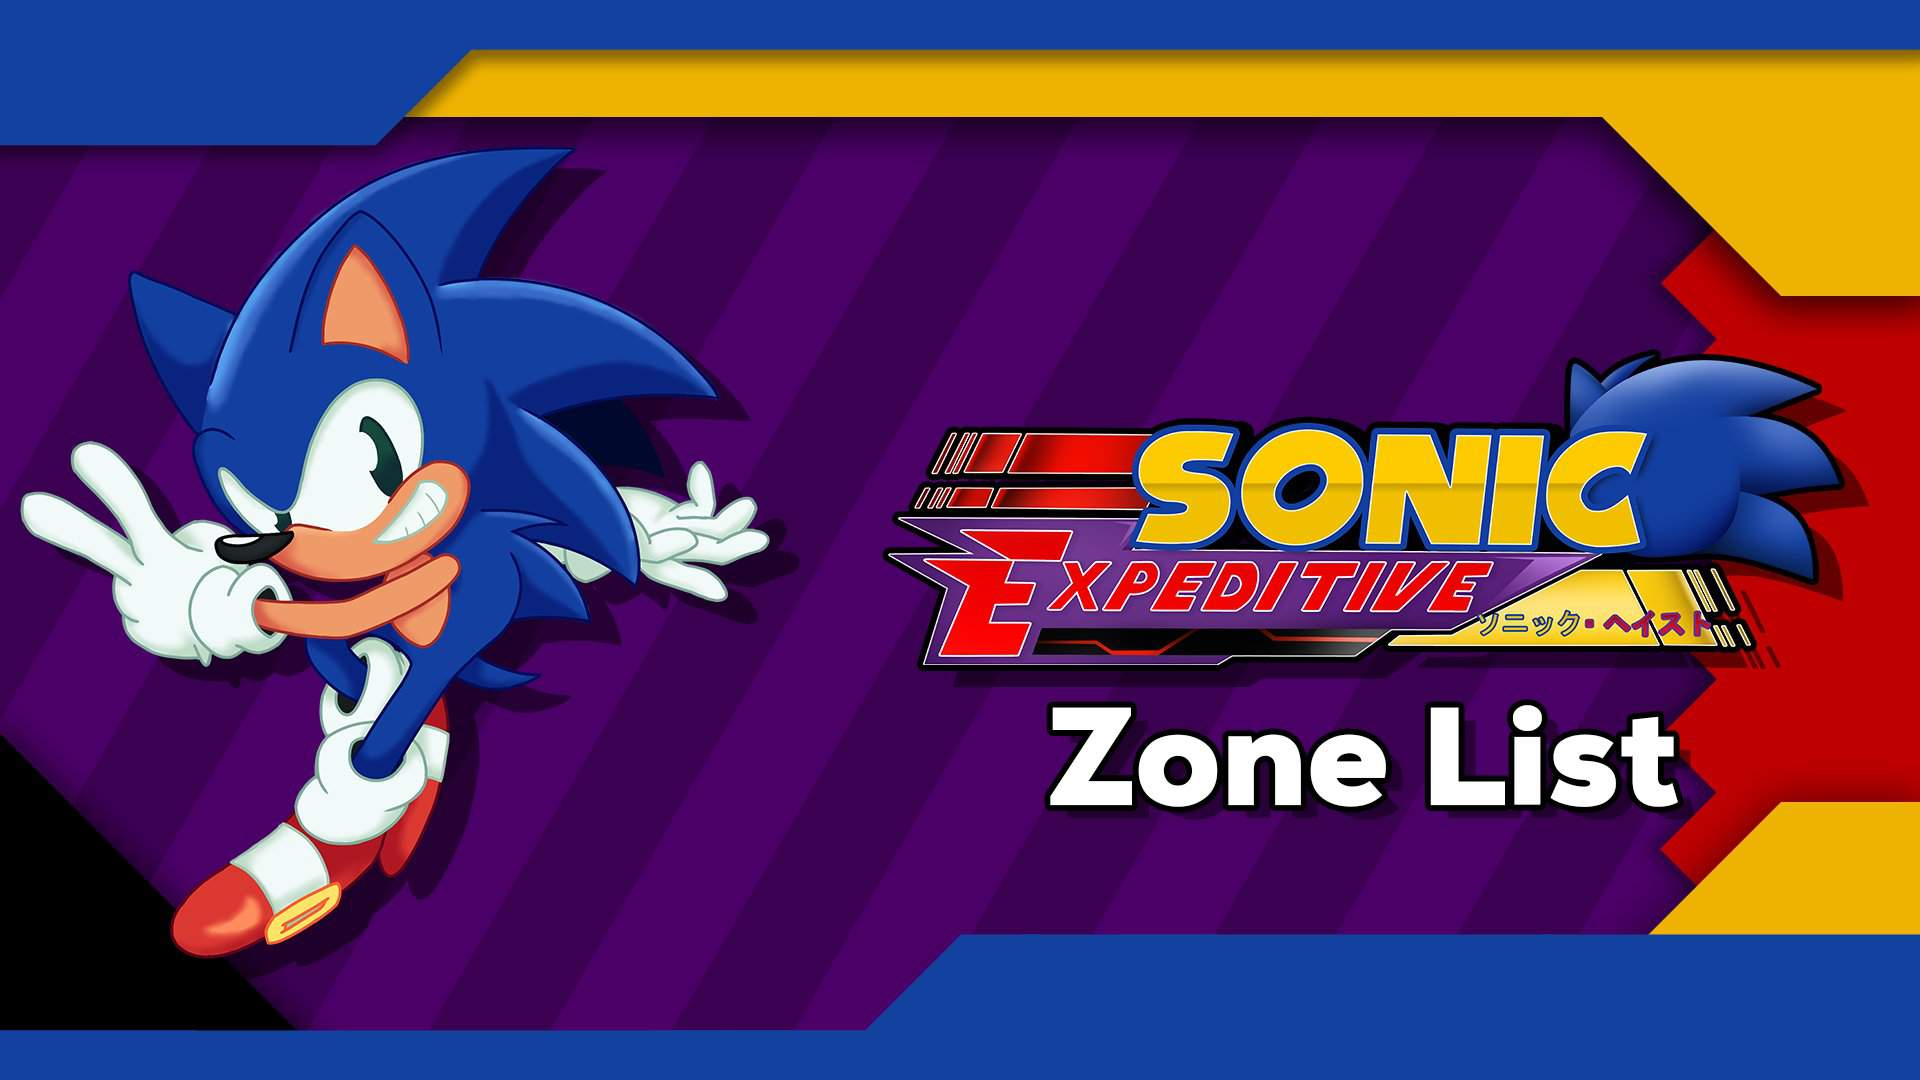 Zone List Sonic Expeditive Sonic Fangame Sonic The Hedgehog Amino